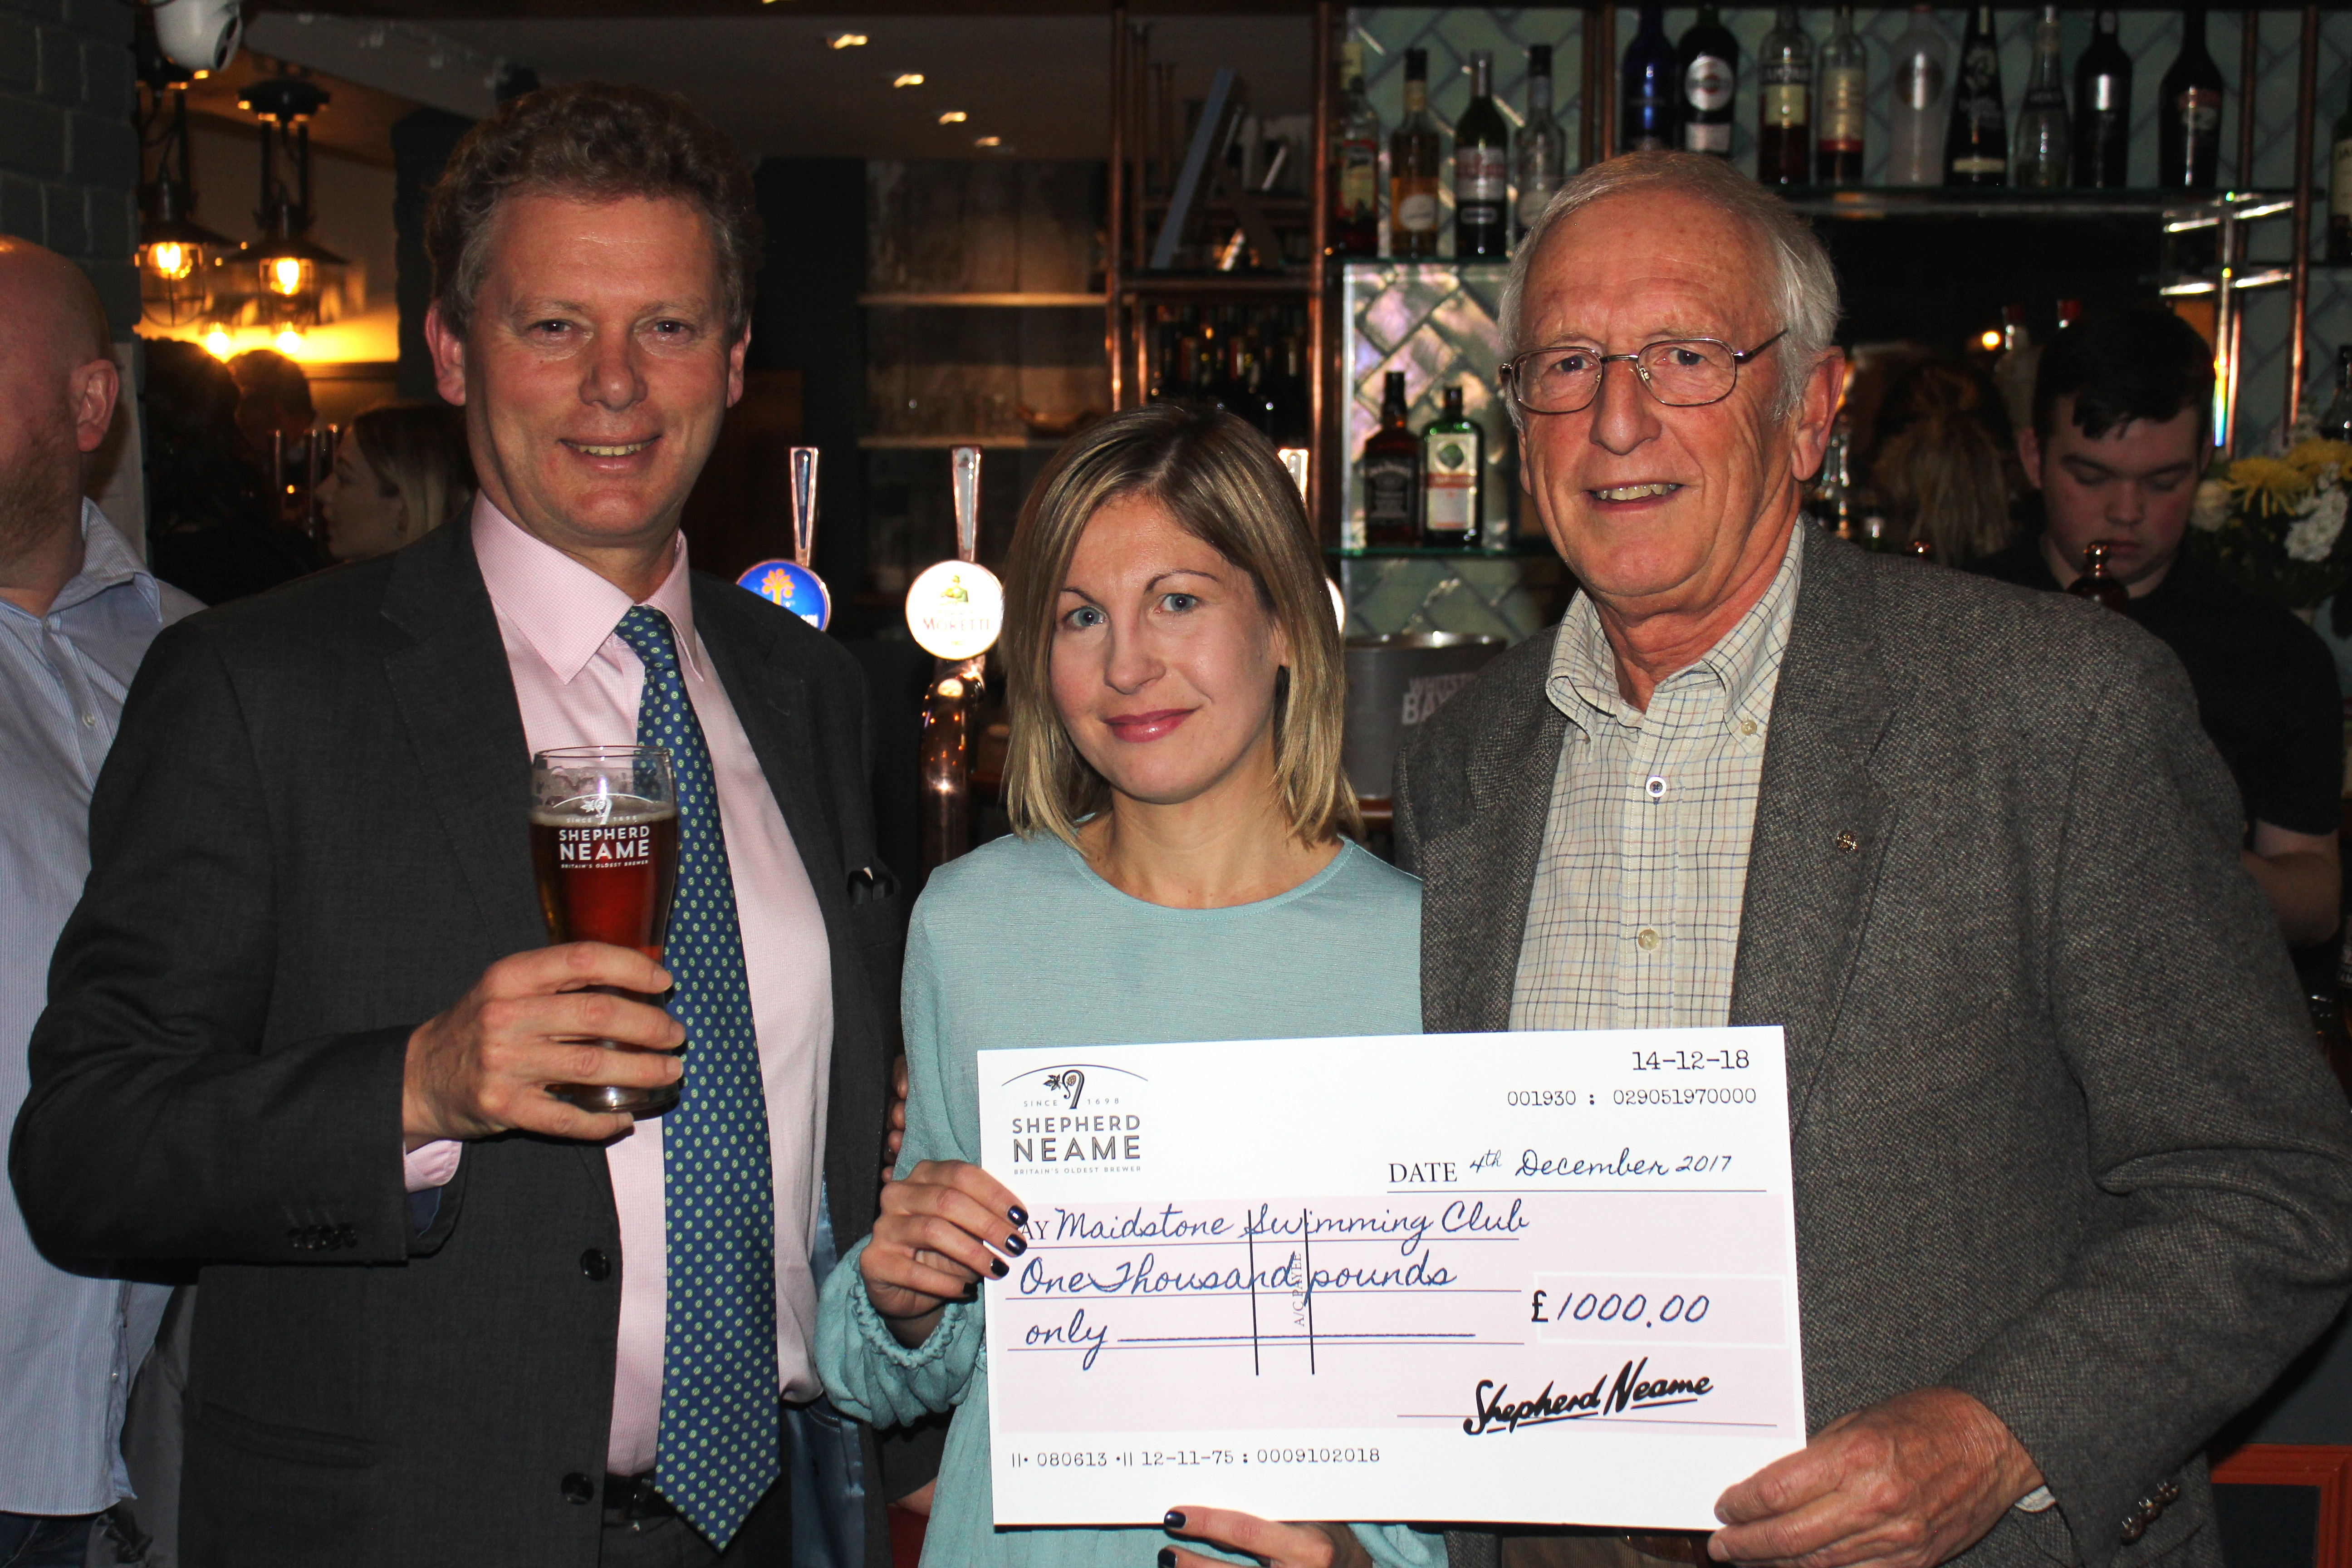 Shepherd Neame CEO Jonathan Neame with Clive Bradburn of Maidstone Swimming Club for the Disabled and club supporter Gemma Hall